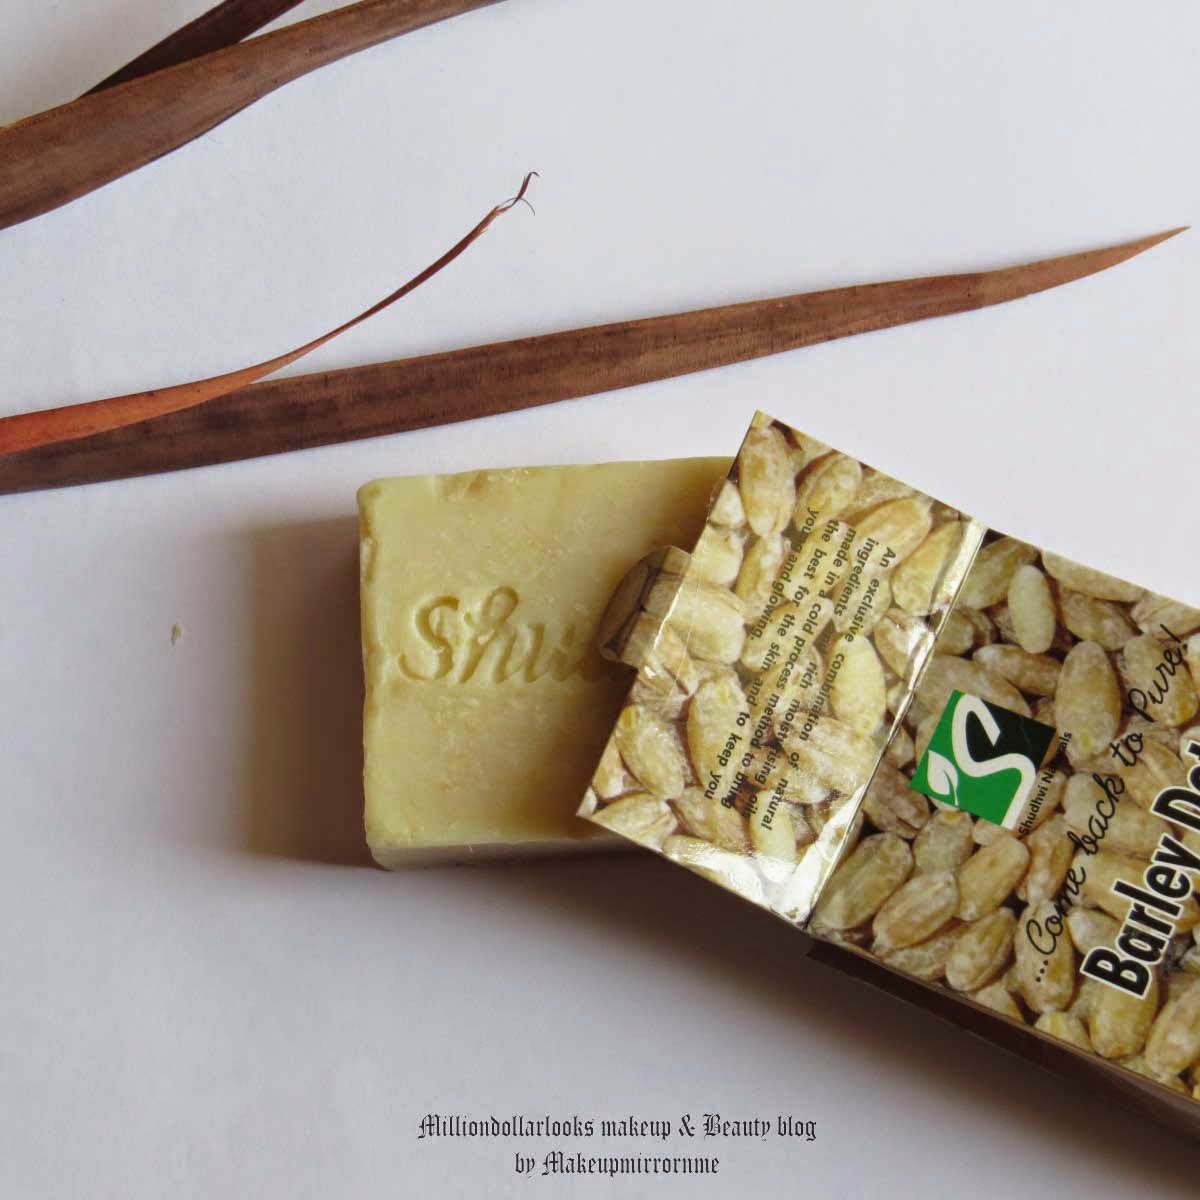 Shudhvi Naturals Barley Detan Handmade Hand Cut Soap Review, Pictures & Price in India, Best soap to clear tan, Tan removal, How to remove tan from body, Best handmade herbal soaps available in India, Shudhvi naturals review, Shudhvi Naturals Handmade soaps range review, Indian makeup and beauty blog, indian beauty blogger, Indian beauty blog